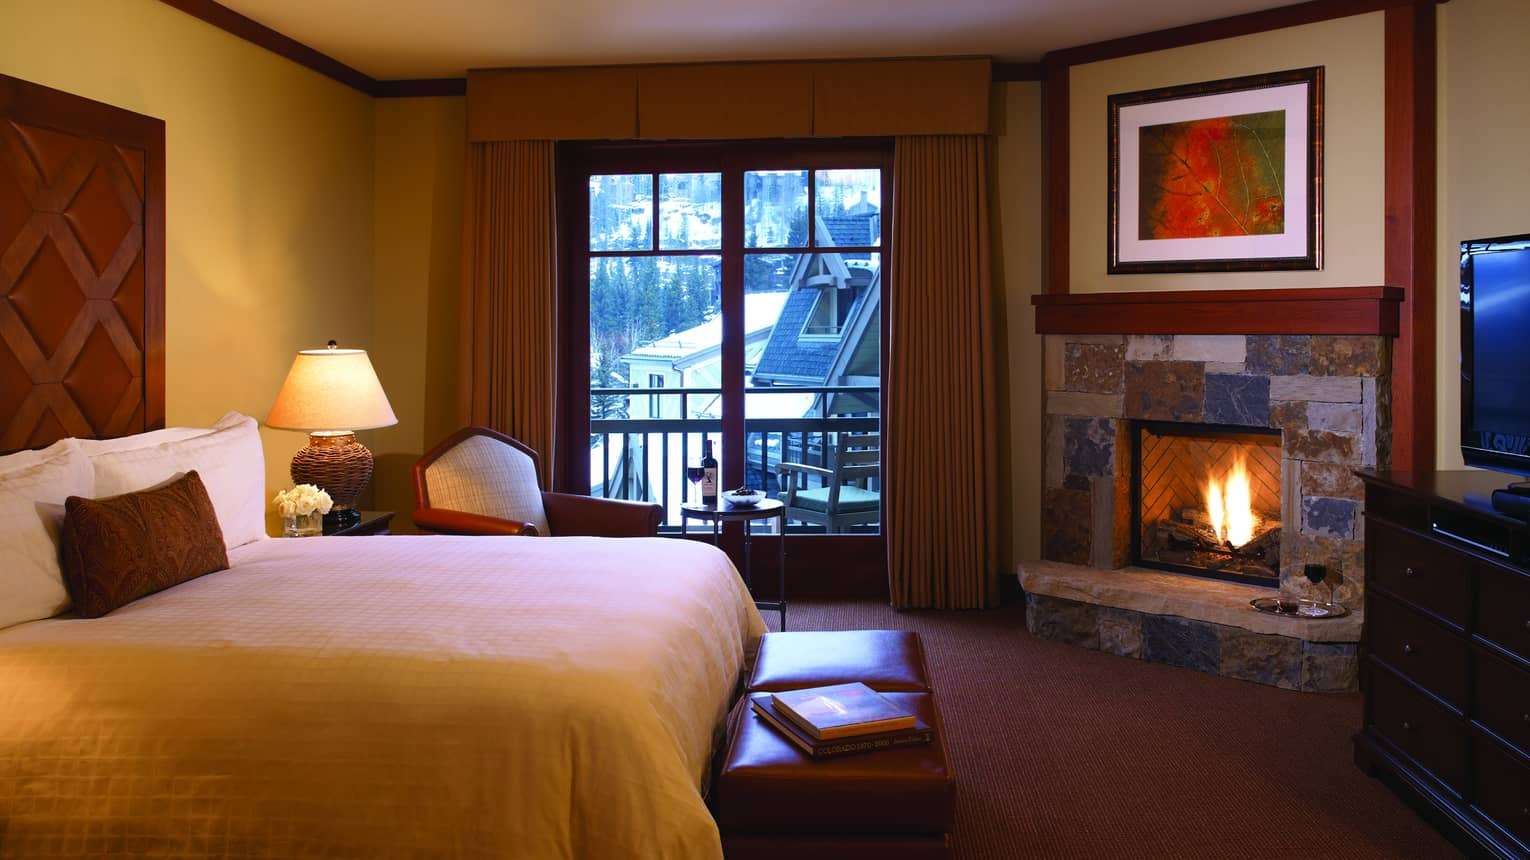 A fire in the fireplace warms the Mountain View Room at Four Seasons Vail